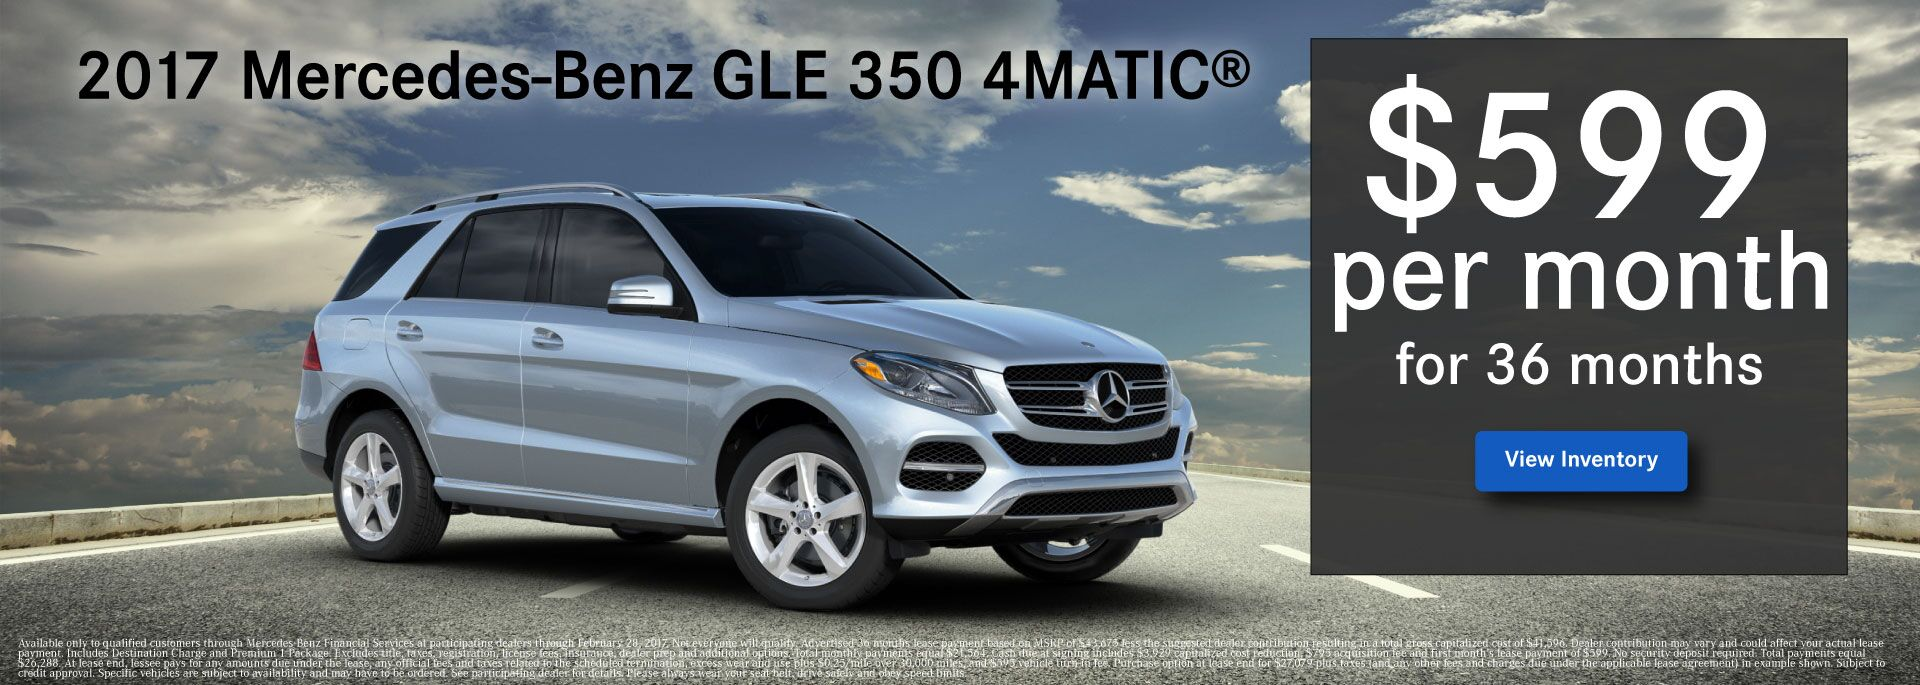 Mercedes benz dealership indianapolis in used cars for Mercedes benz dealership indianapolis